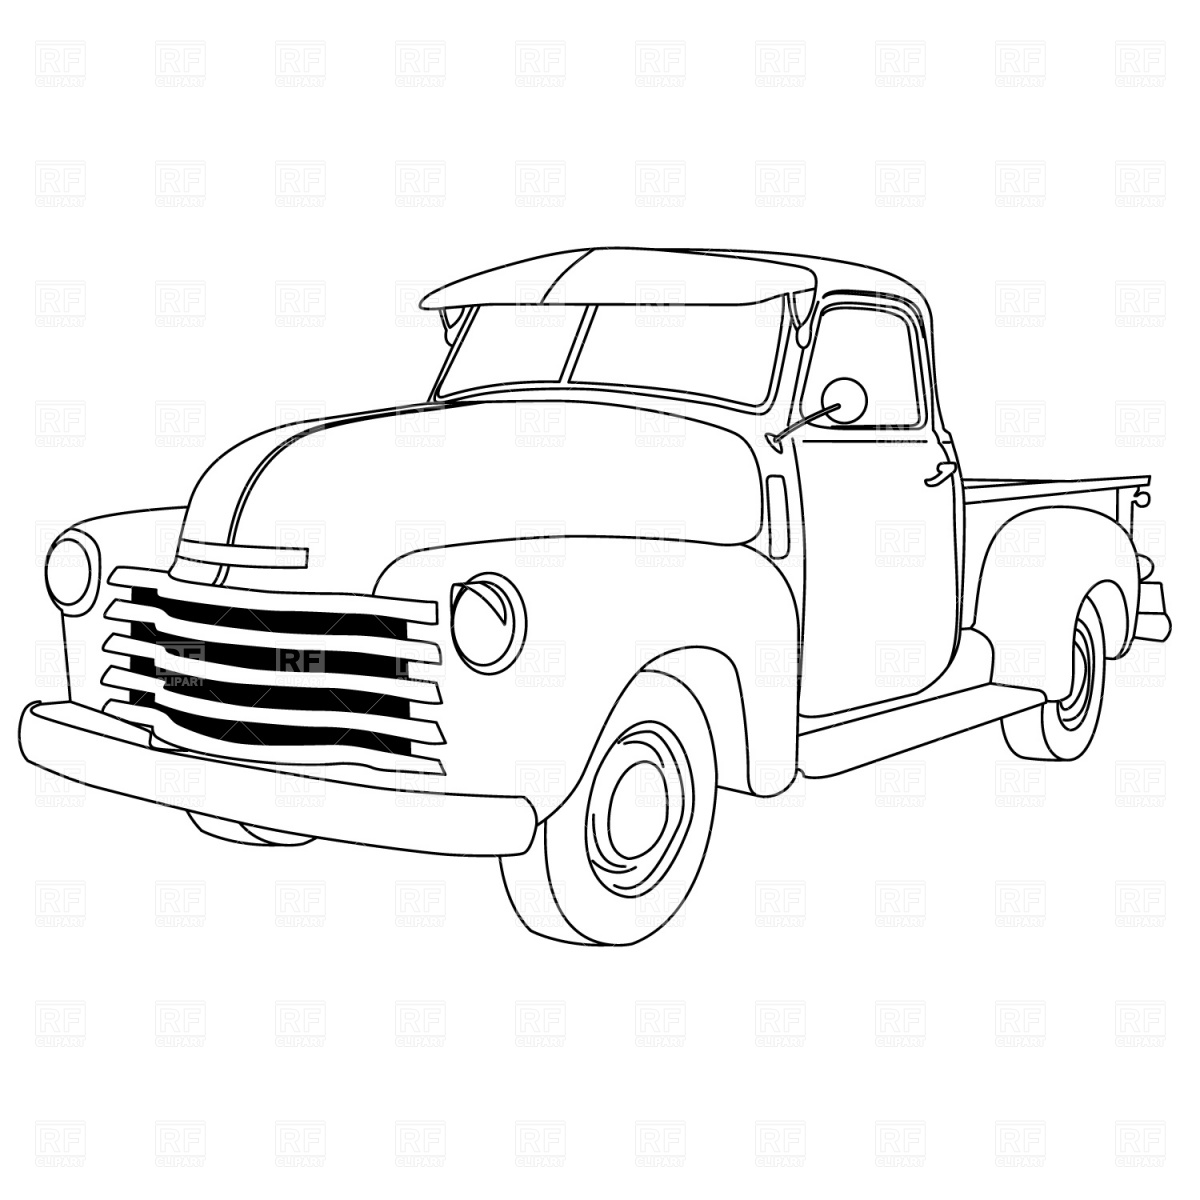 17 Classic Truck Vector Clip Art Images Old Chevy Truck Drawings Ford Pickup Truck Clip Art And Pick Up Truck Clip Art Newdesignfile Com